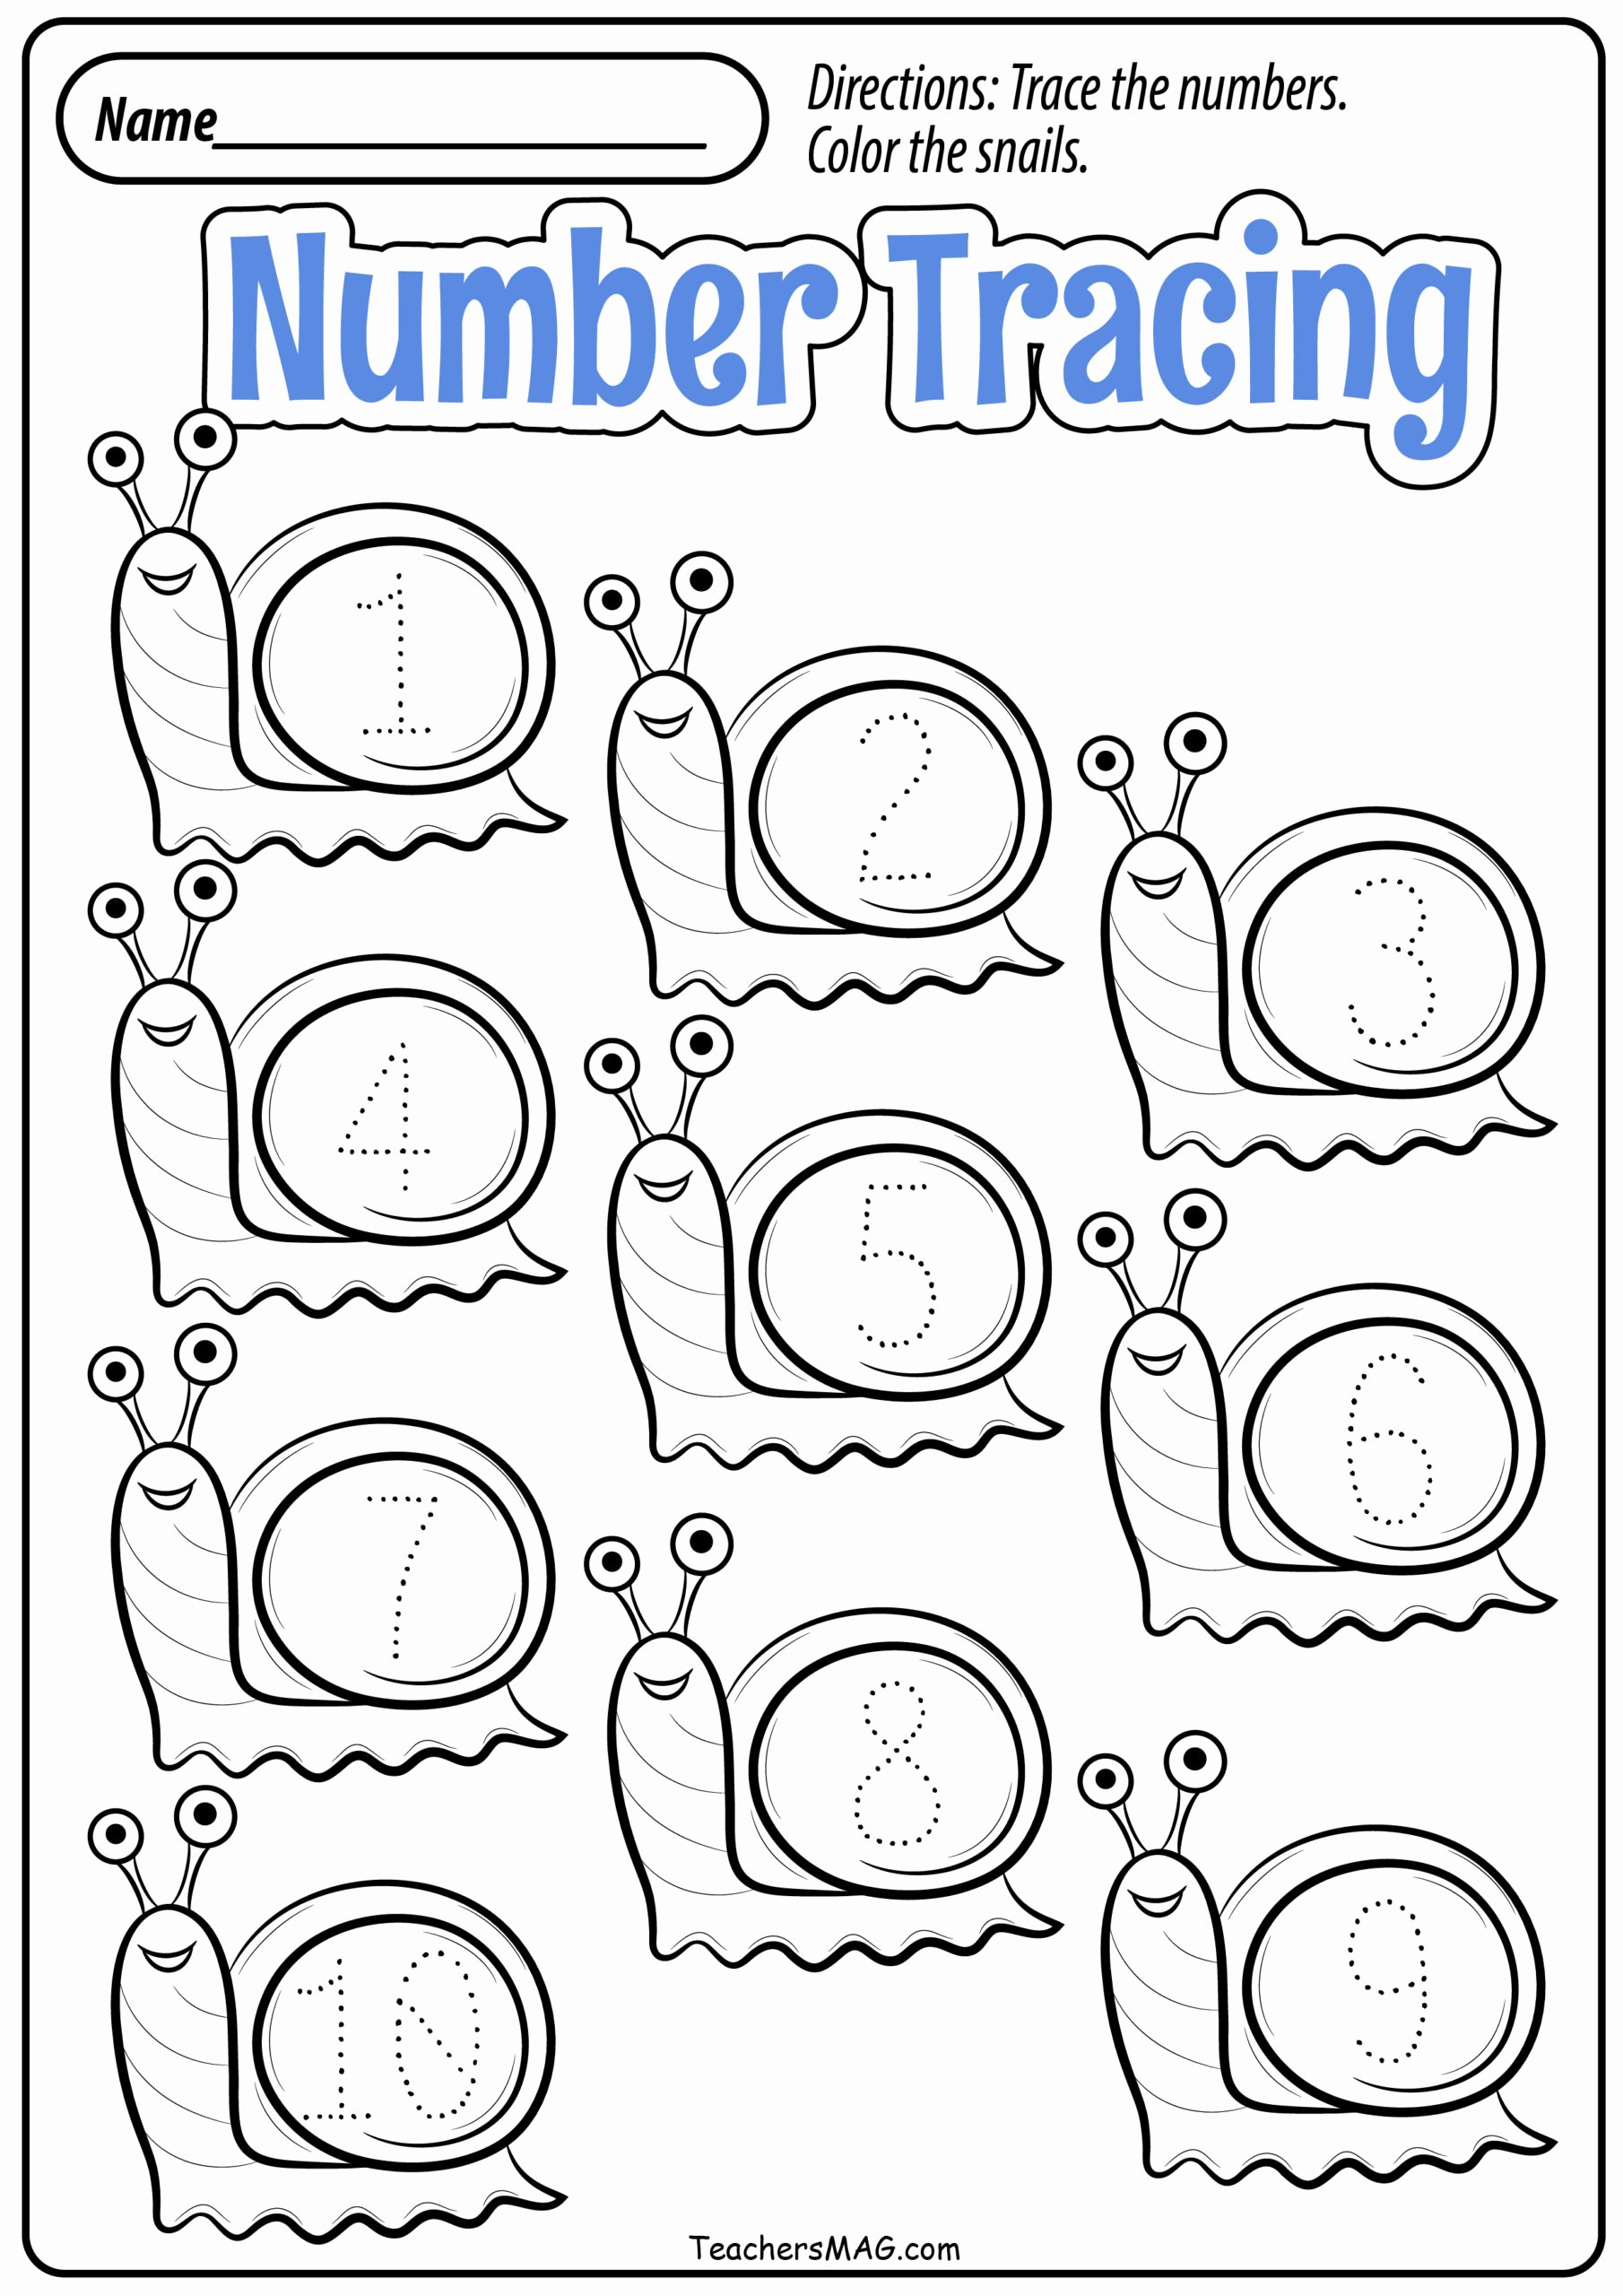 hight resolution of Addition Worksheets for Preschoolers with Pictures Lovely Math Worksheet  Remarkable Preschool Math Worksheets Free – Printable Worksheets for Kids